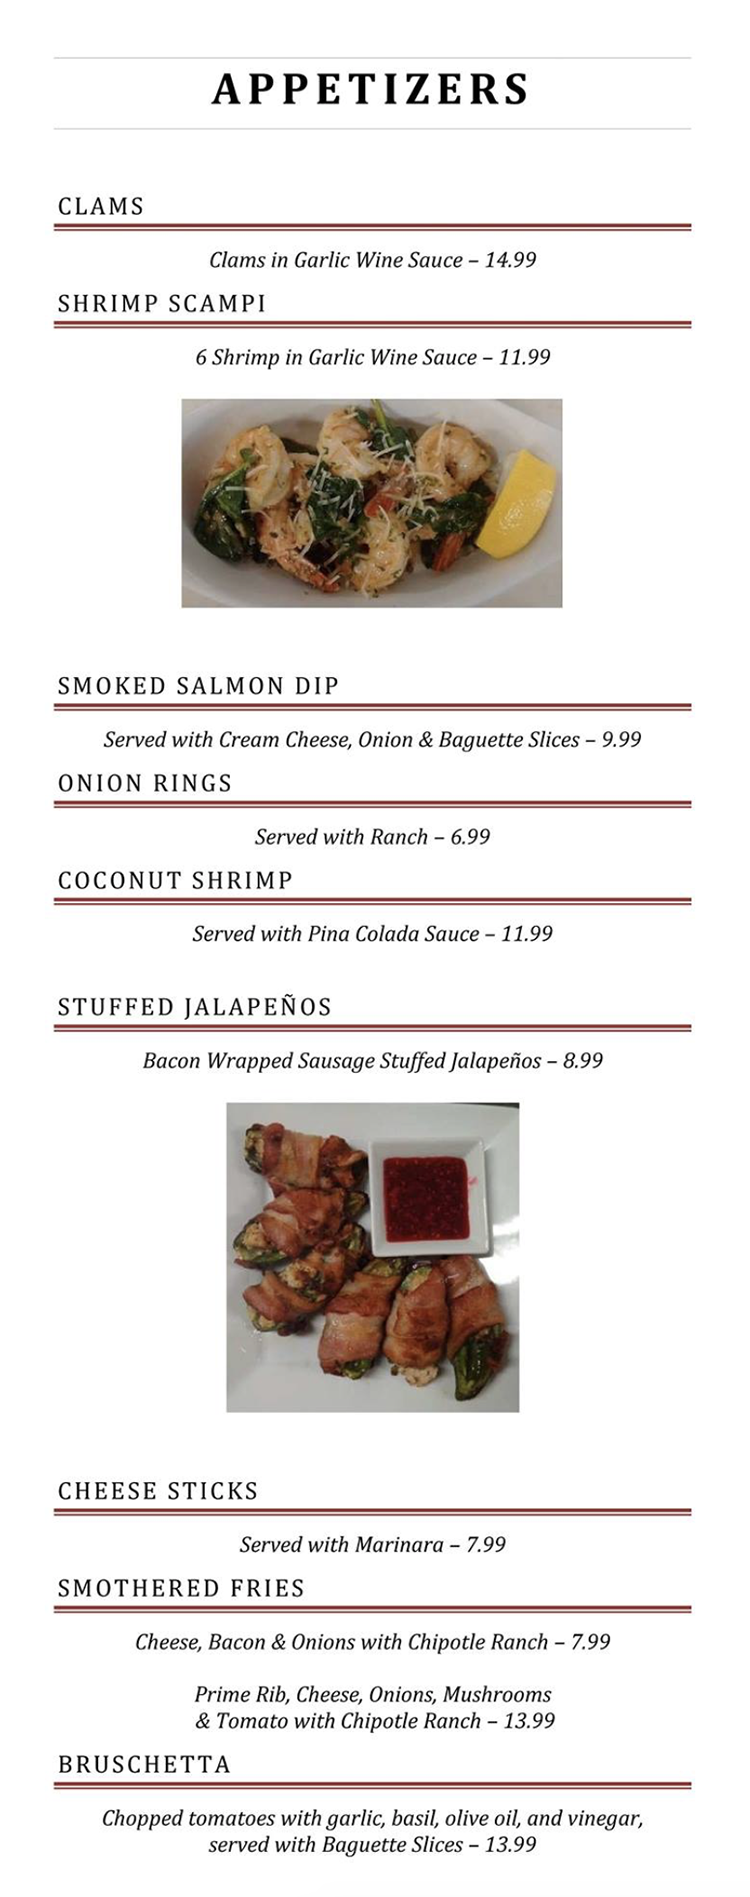 Blue Jay Cafe menu - appetizers